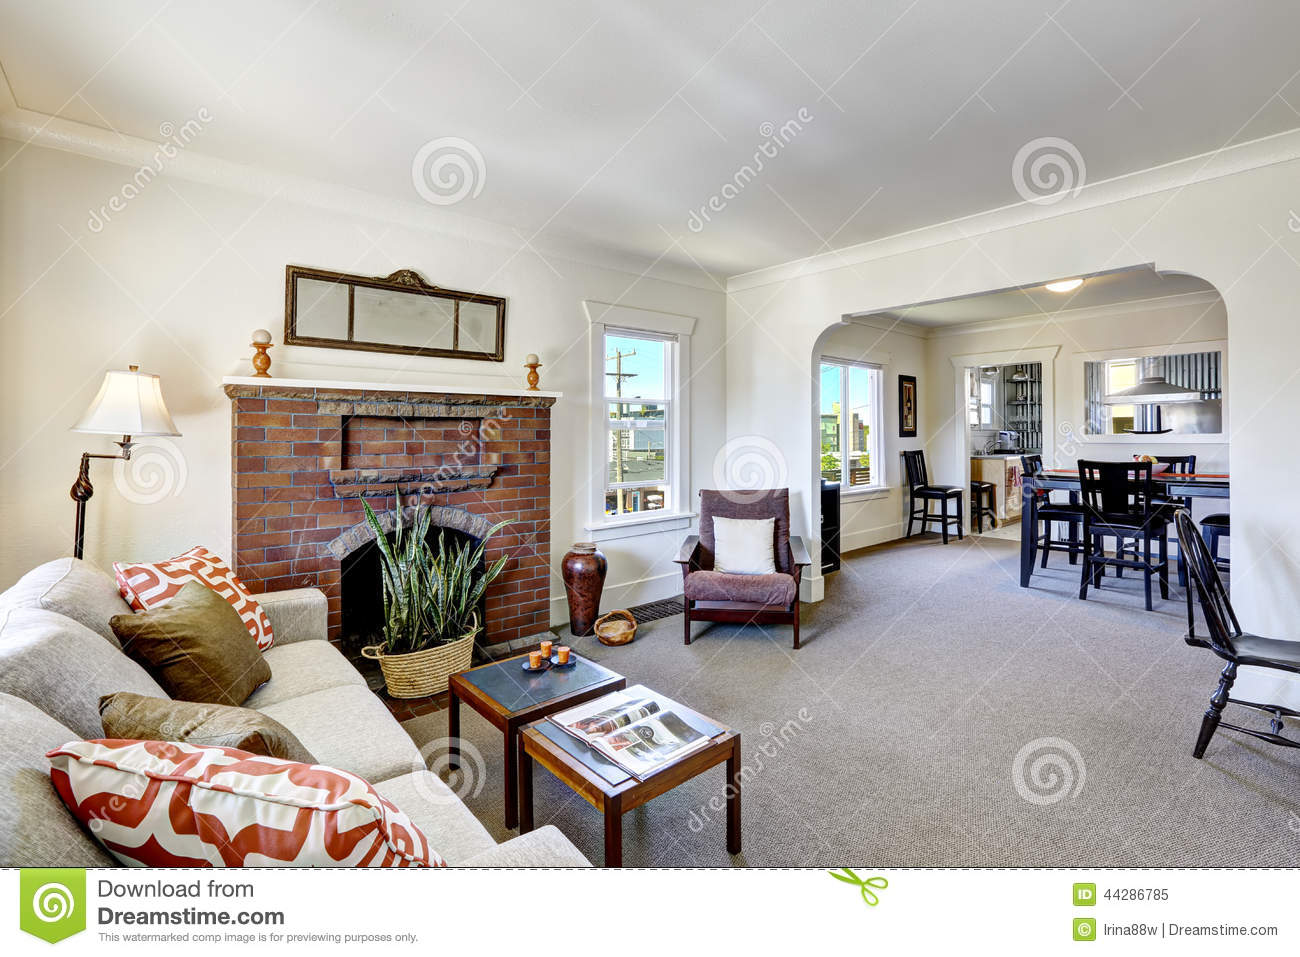 Room With Brick Fireplace In Old American House Stock